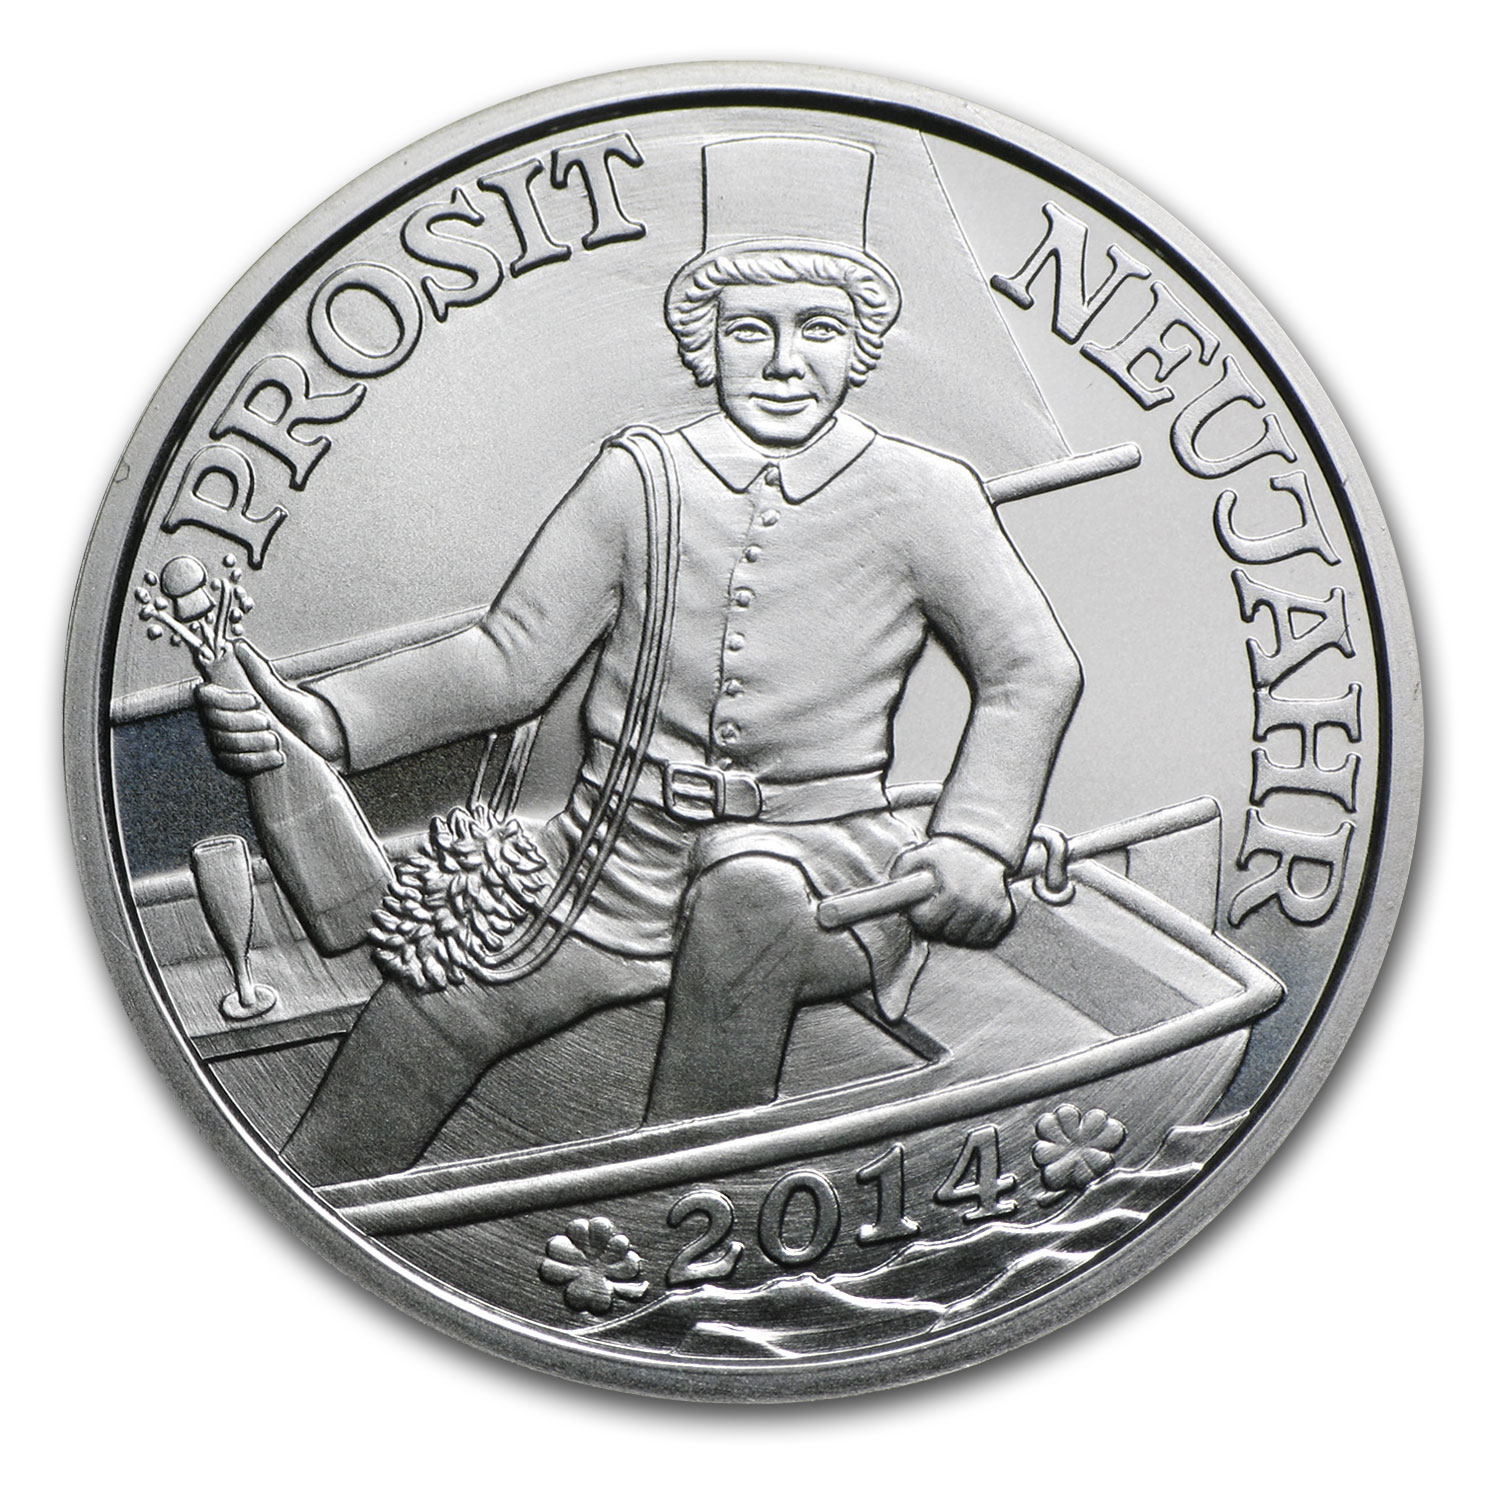 2014 Glücksjeton Happy New Year Silver Round ASW .1302 oz